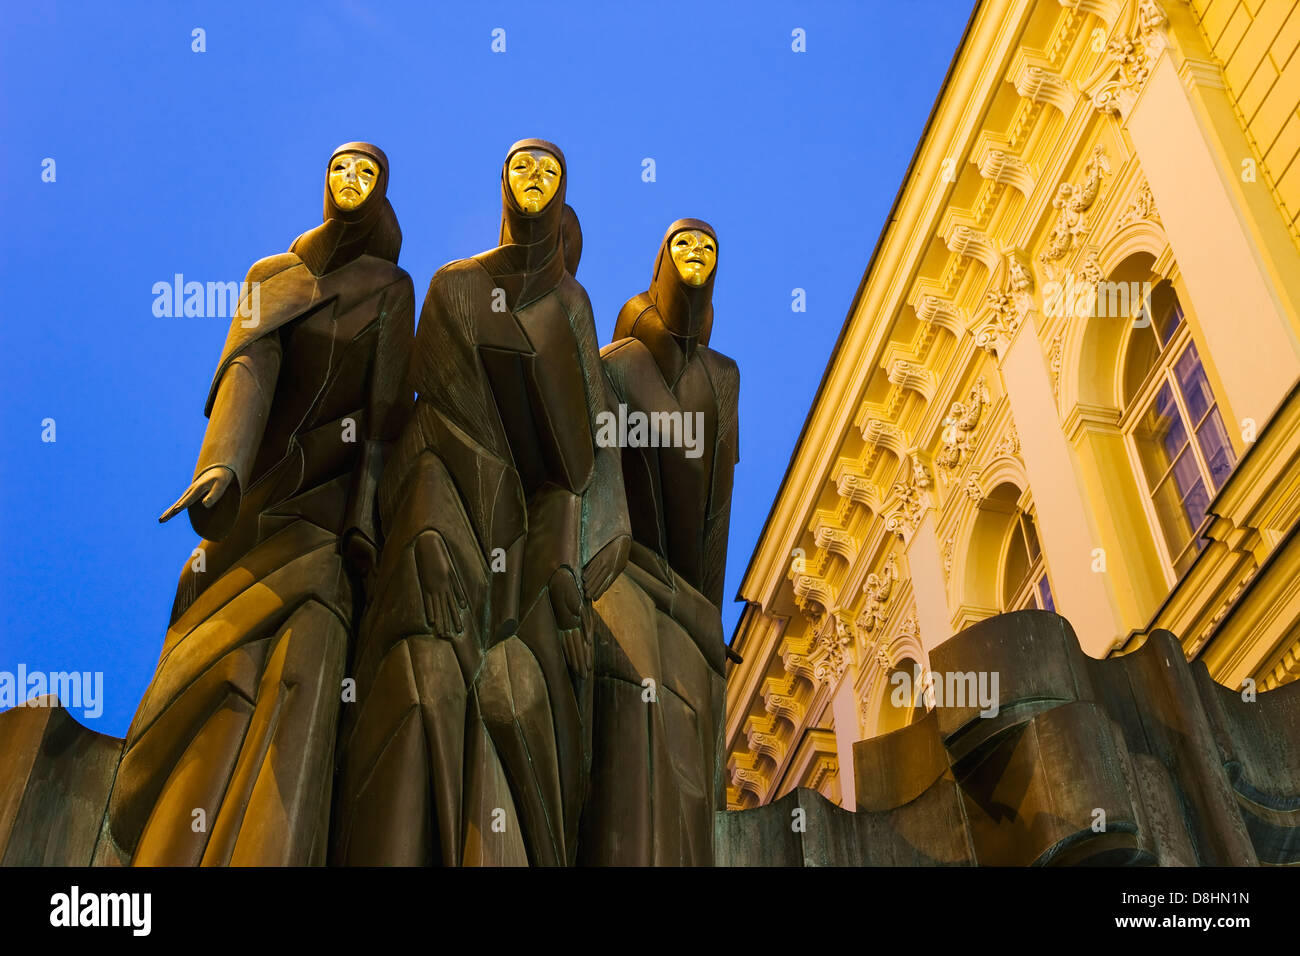 Baltic States, Lithuania, Vilnius, National Drama Theatre, Sculpture of the Feast of the three musicians - Stock Image